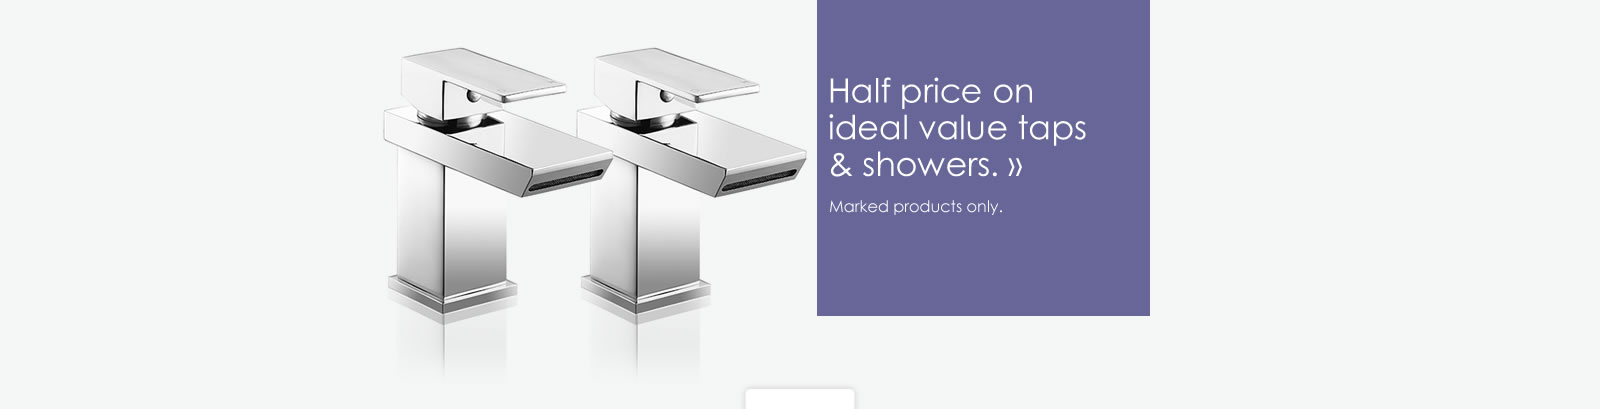 Half price on Ideal Value brassware